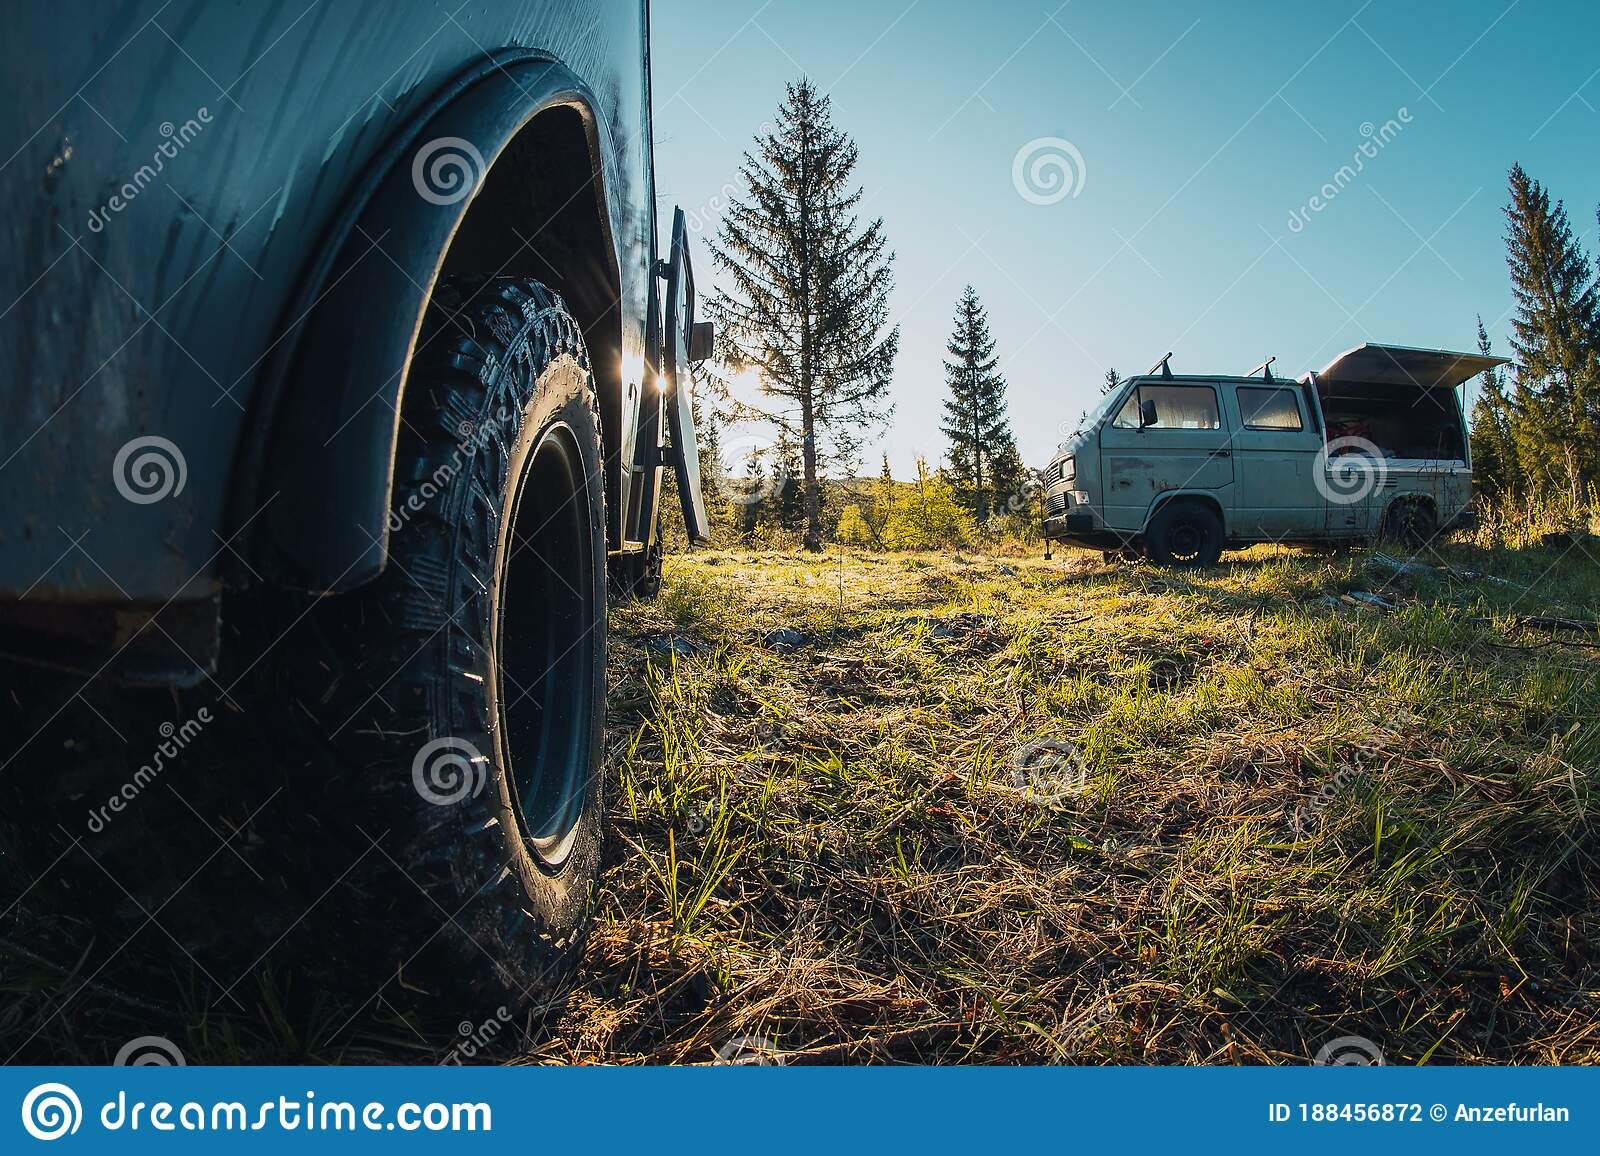 Two Old Vintage Custom Offroad Campervans Parked In The Morning Hours On The Forest Plain View Of The Serious Off Road Tire Tread Stock Photo Image Of Travel Land 188456872